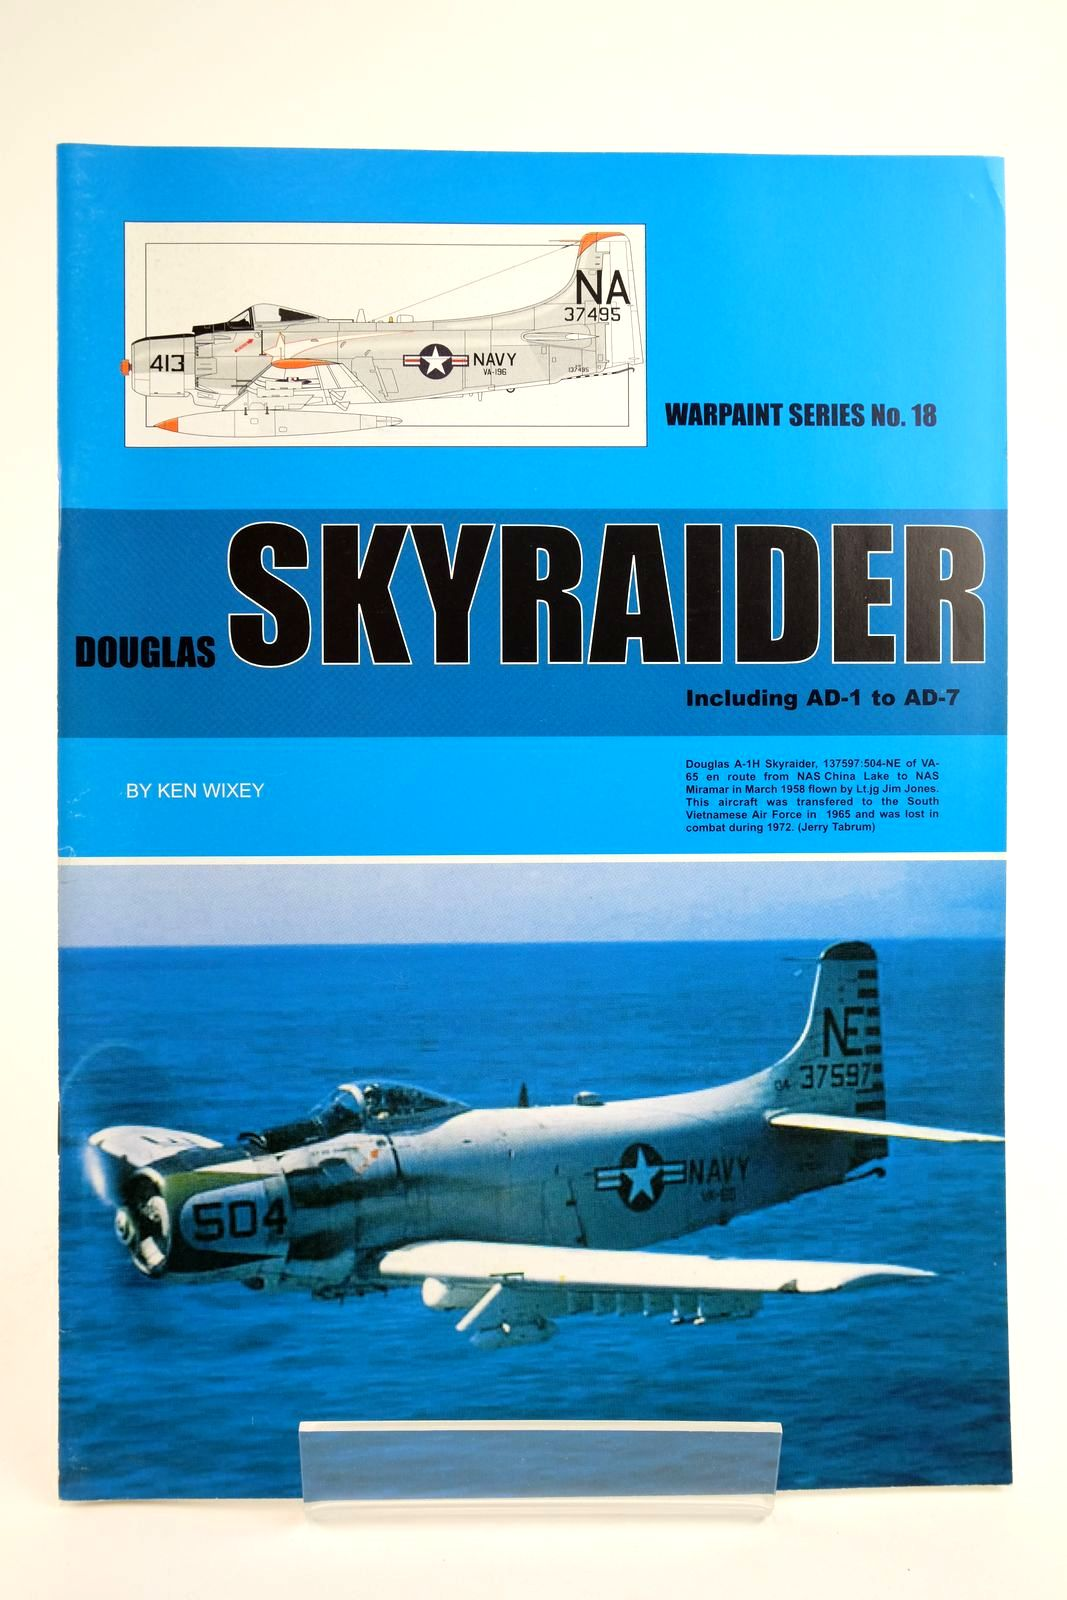 Photo of DOUGLAS SKYRAIDER INCLUDING AD-1 TO AD-7 written by Wixey, Ken published by Hall Park Books Ltd. (STOCK CODE: 2135106)  for sale by Stella & Rose's Books